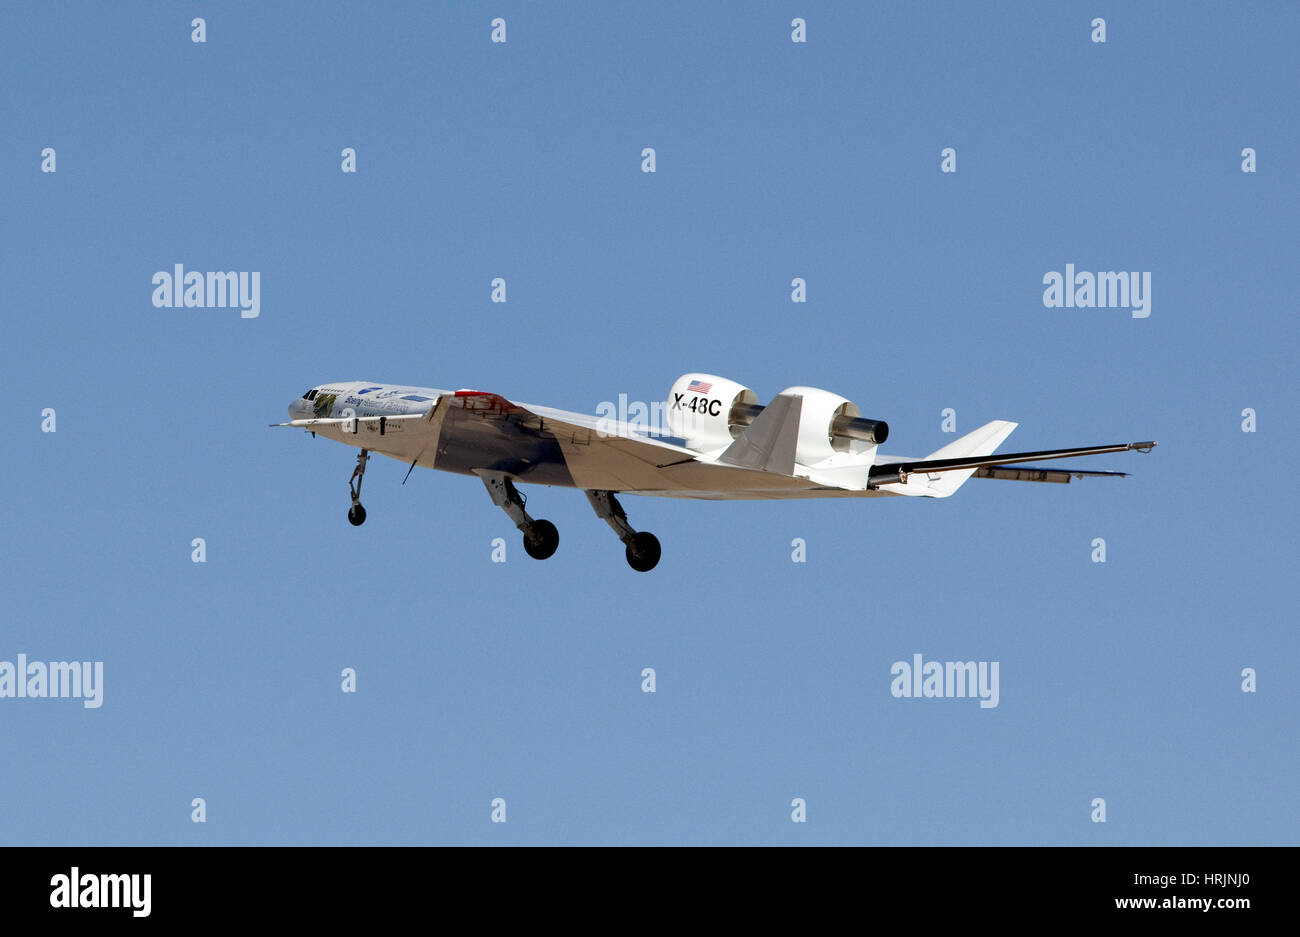 X-48C Blended Wing Body Aircraft, 2012 - Stock Image